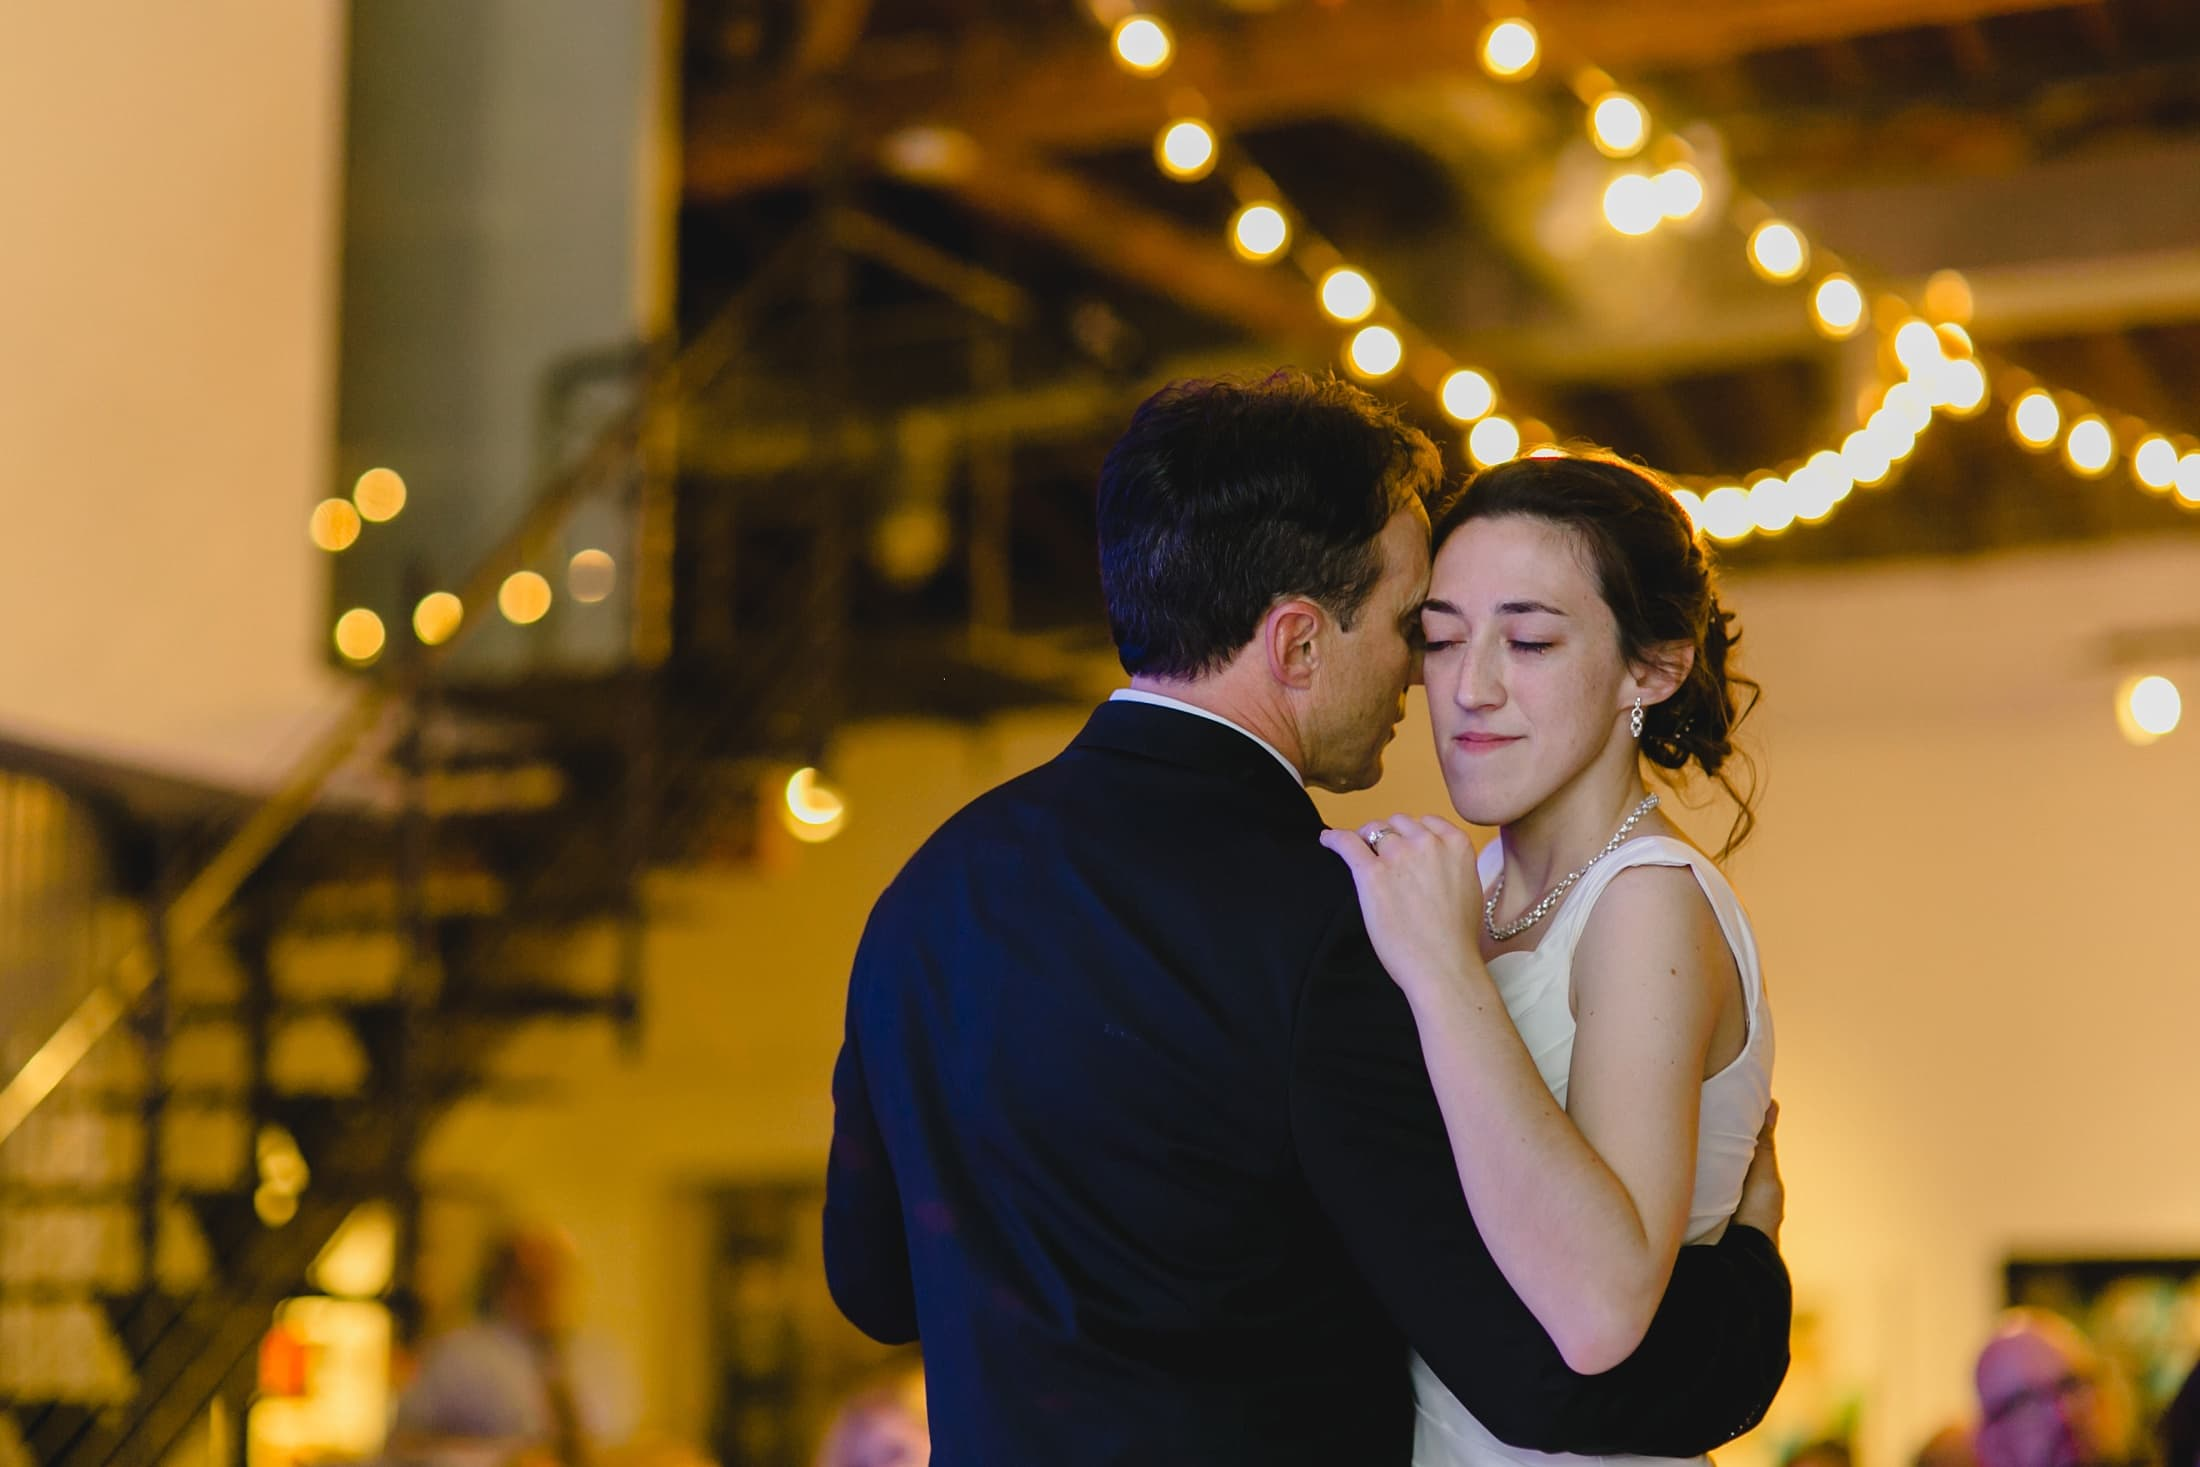 The Monorchid wedding reception photos